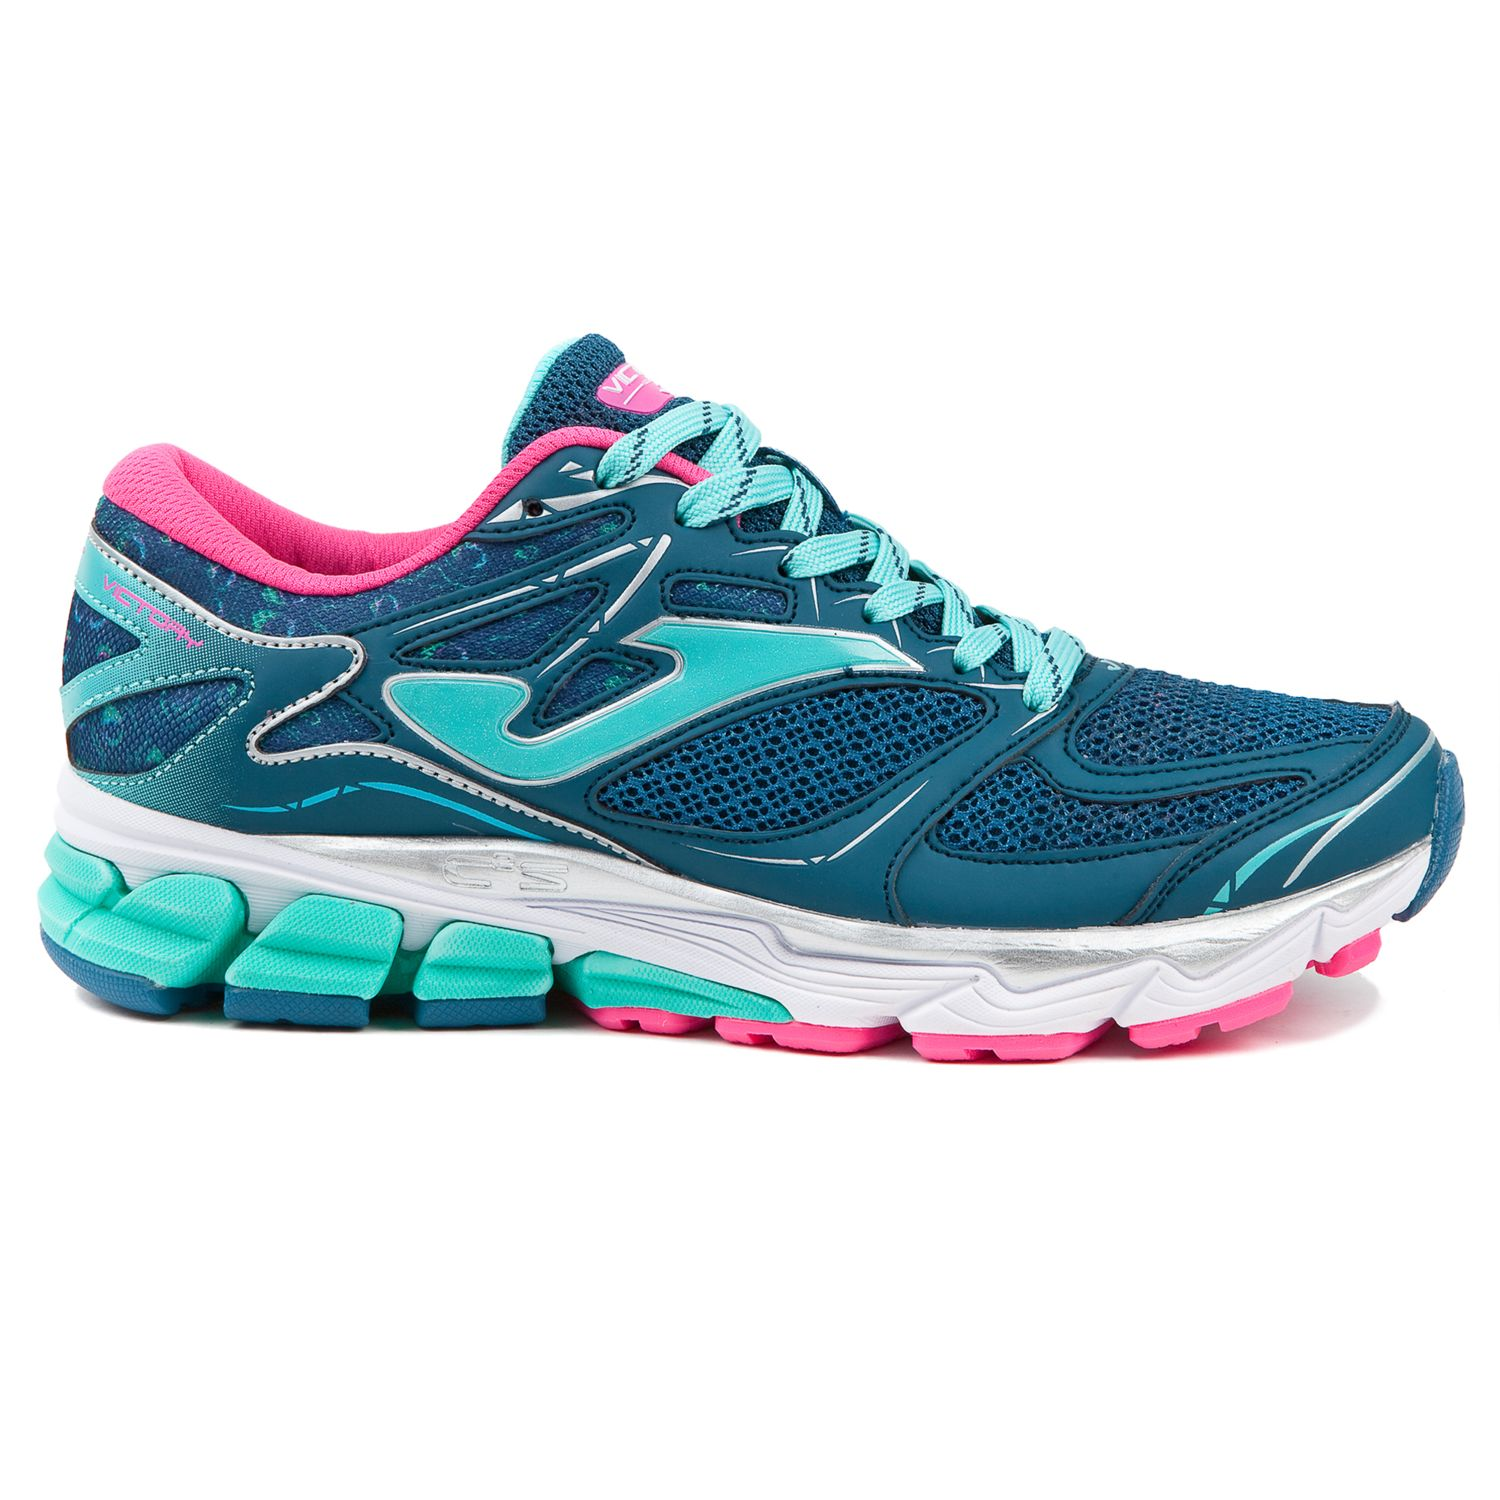 Joma - Chaussures femme Victory turquoise/rose - pas cher Achat / Vente Chaussures running